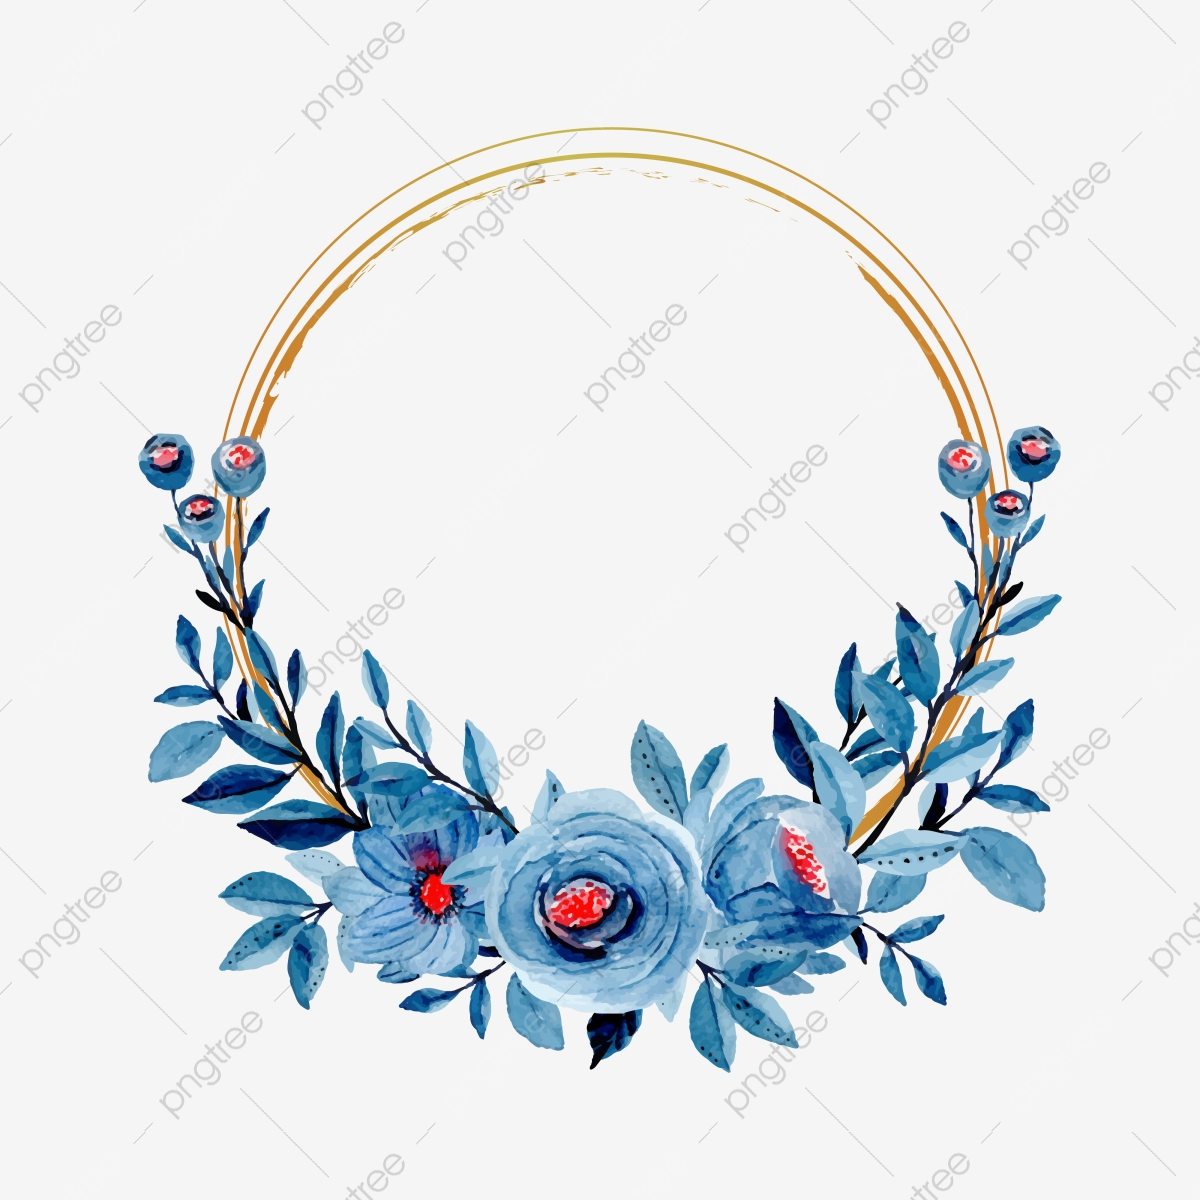 blue floral watercolor with golden frame flower wedding invitation png and vector with transparent background for free download https pngtree com freepng blue floral watercolor with golden frame 5358824 html